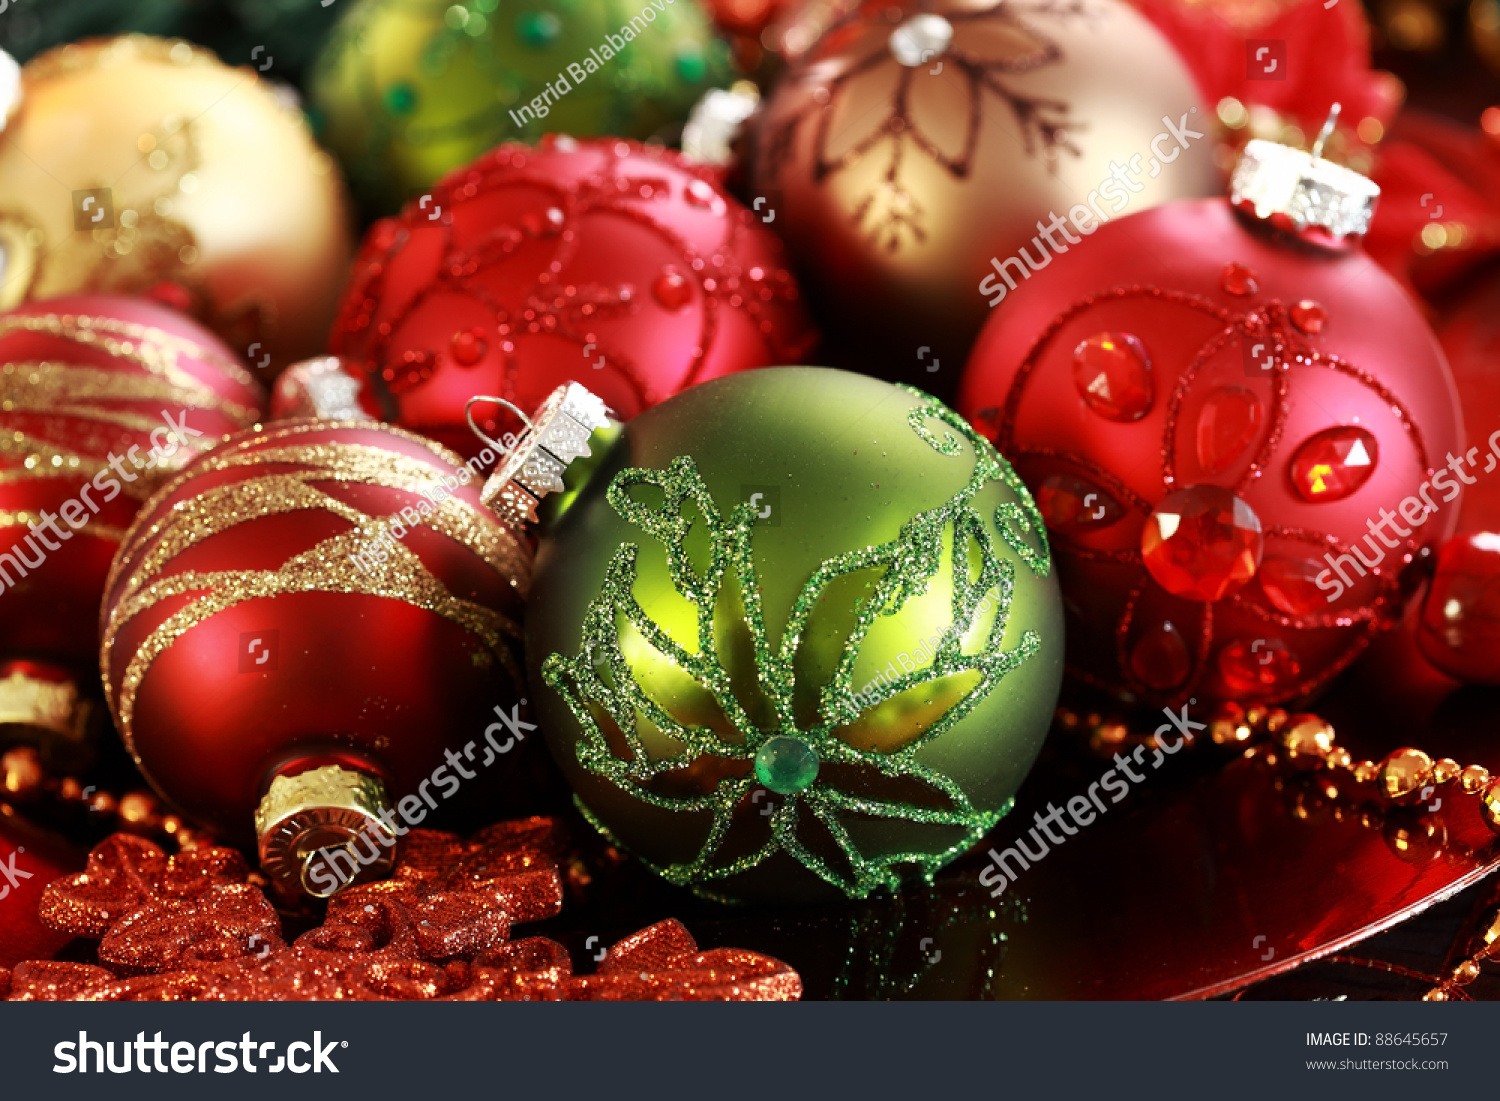 beautiful christmas ornaments as table decoration - Beautiful Christmas Ornaments